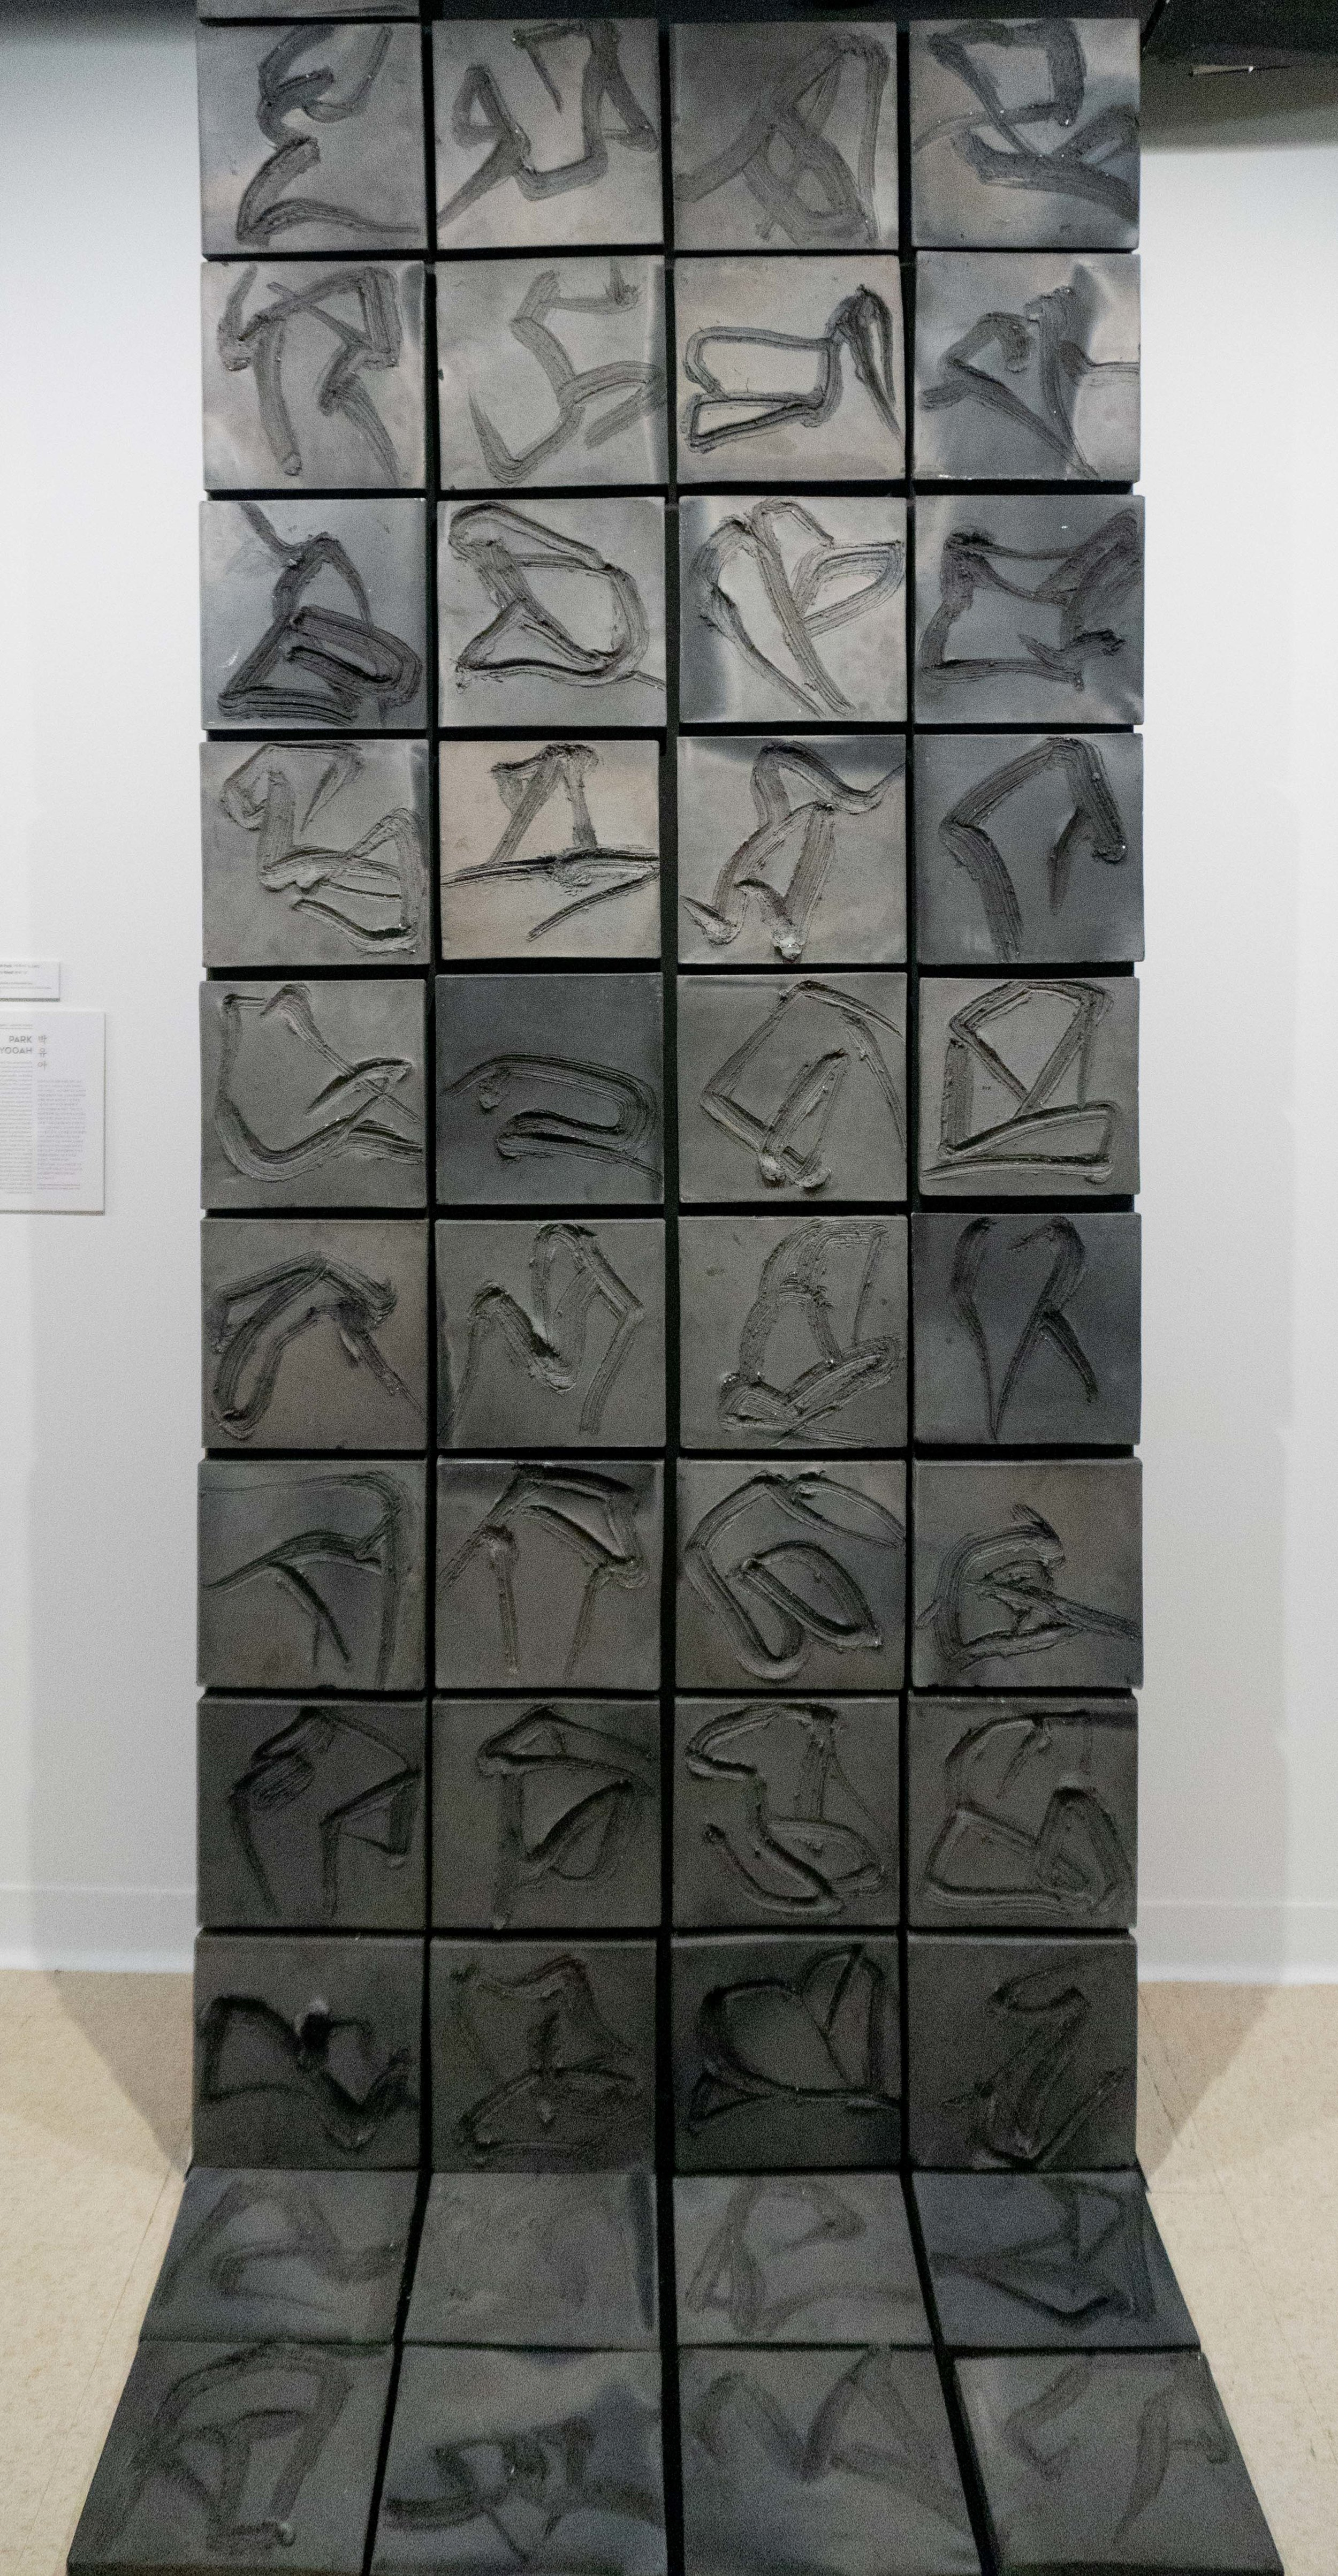 Yooah Park 박유아 b.1961   King's Road 왕의 길 2019 Incompletely combusted clay 48 pieces of 10 x 10 x 1 in (25.4 x 25.4 x 2.54 cm) tiles installed